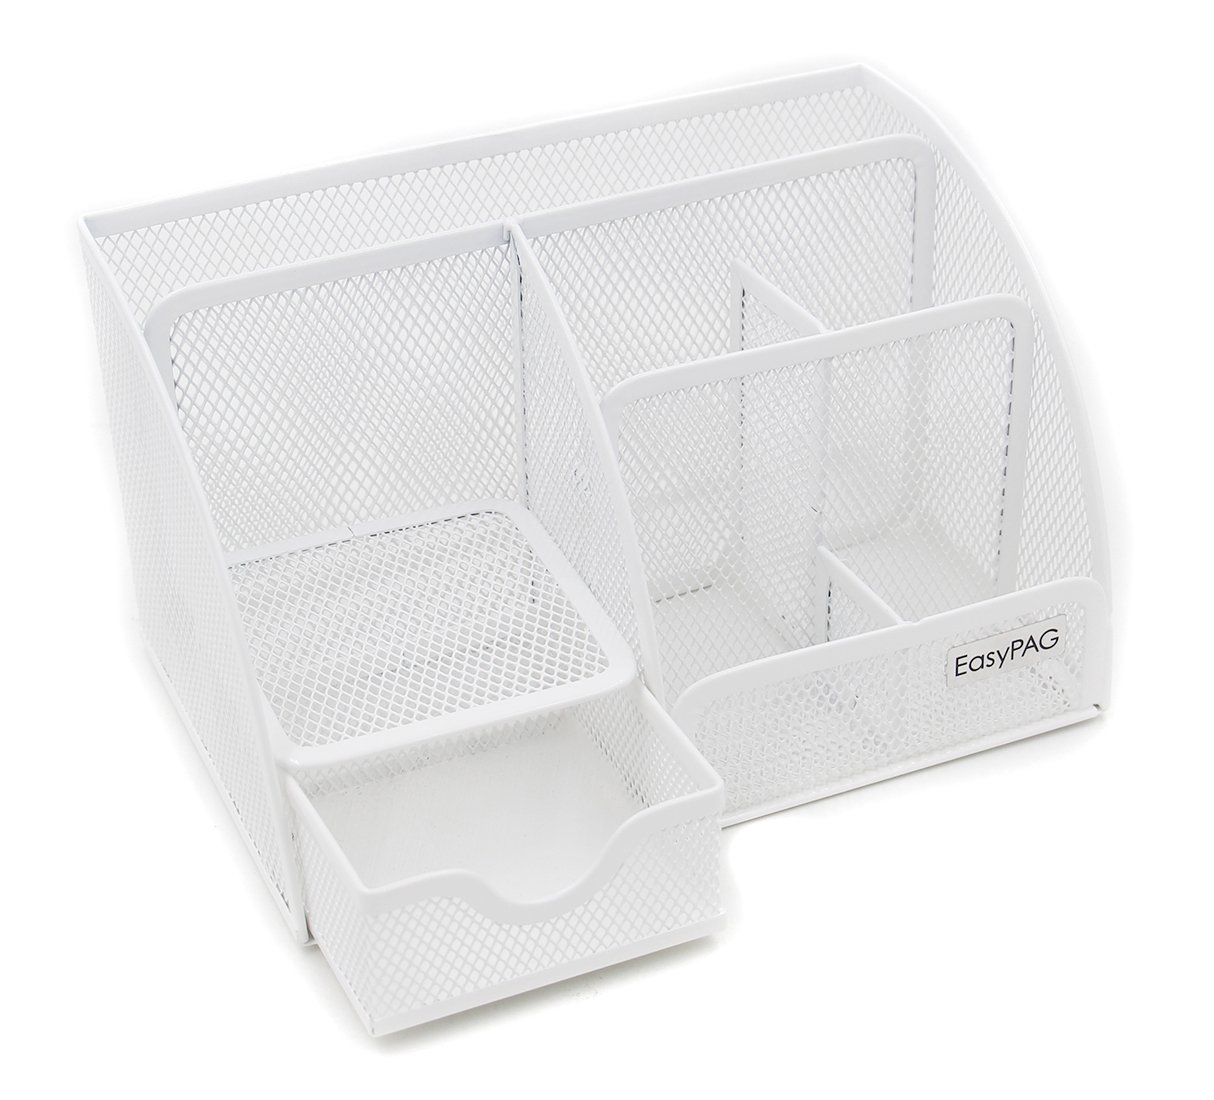 EasyPAG Mesh Desk Organizer 5 Compartments and 1 Slide Drawer,White